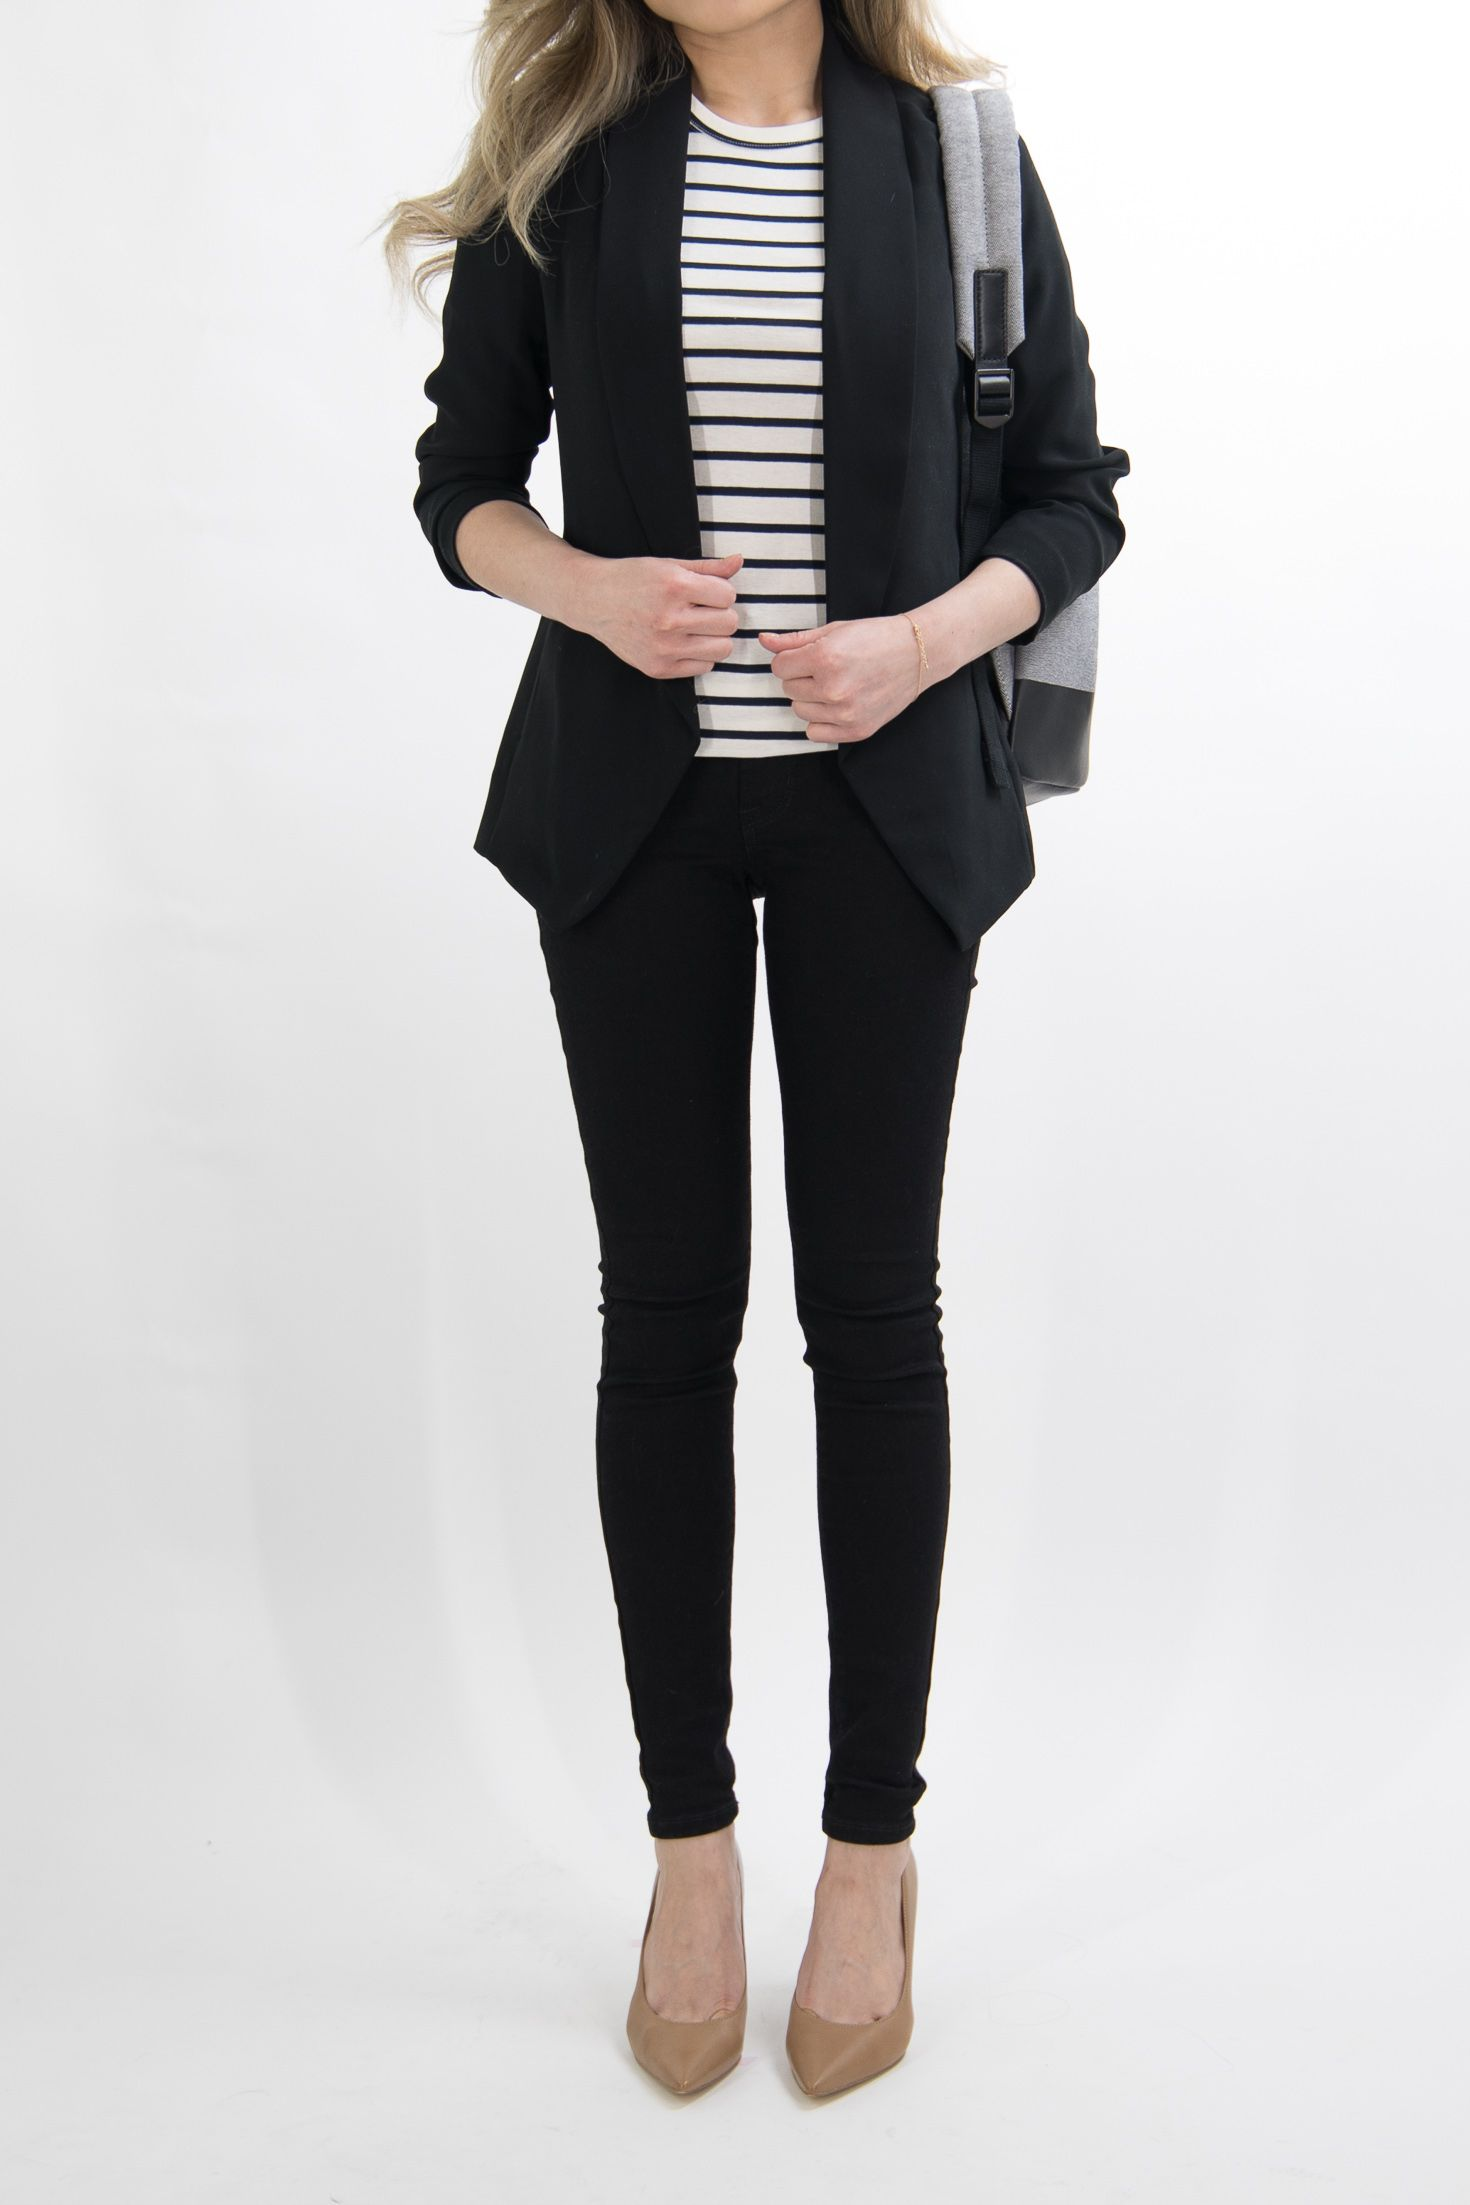 898a88f7da9 1 MONTH of Business Casual Work Outfit Ideas for Women